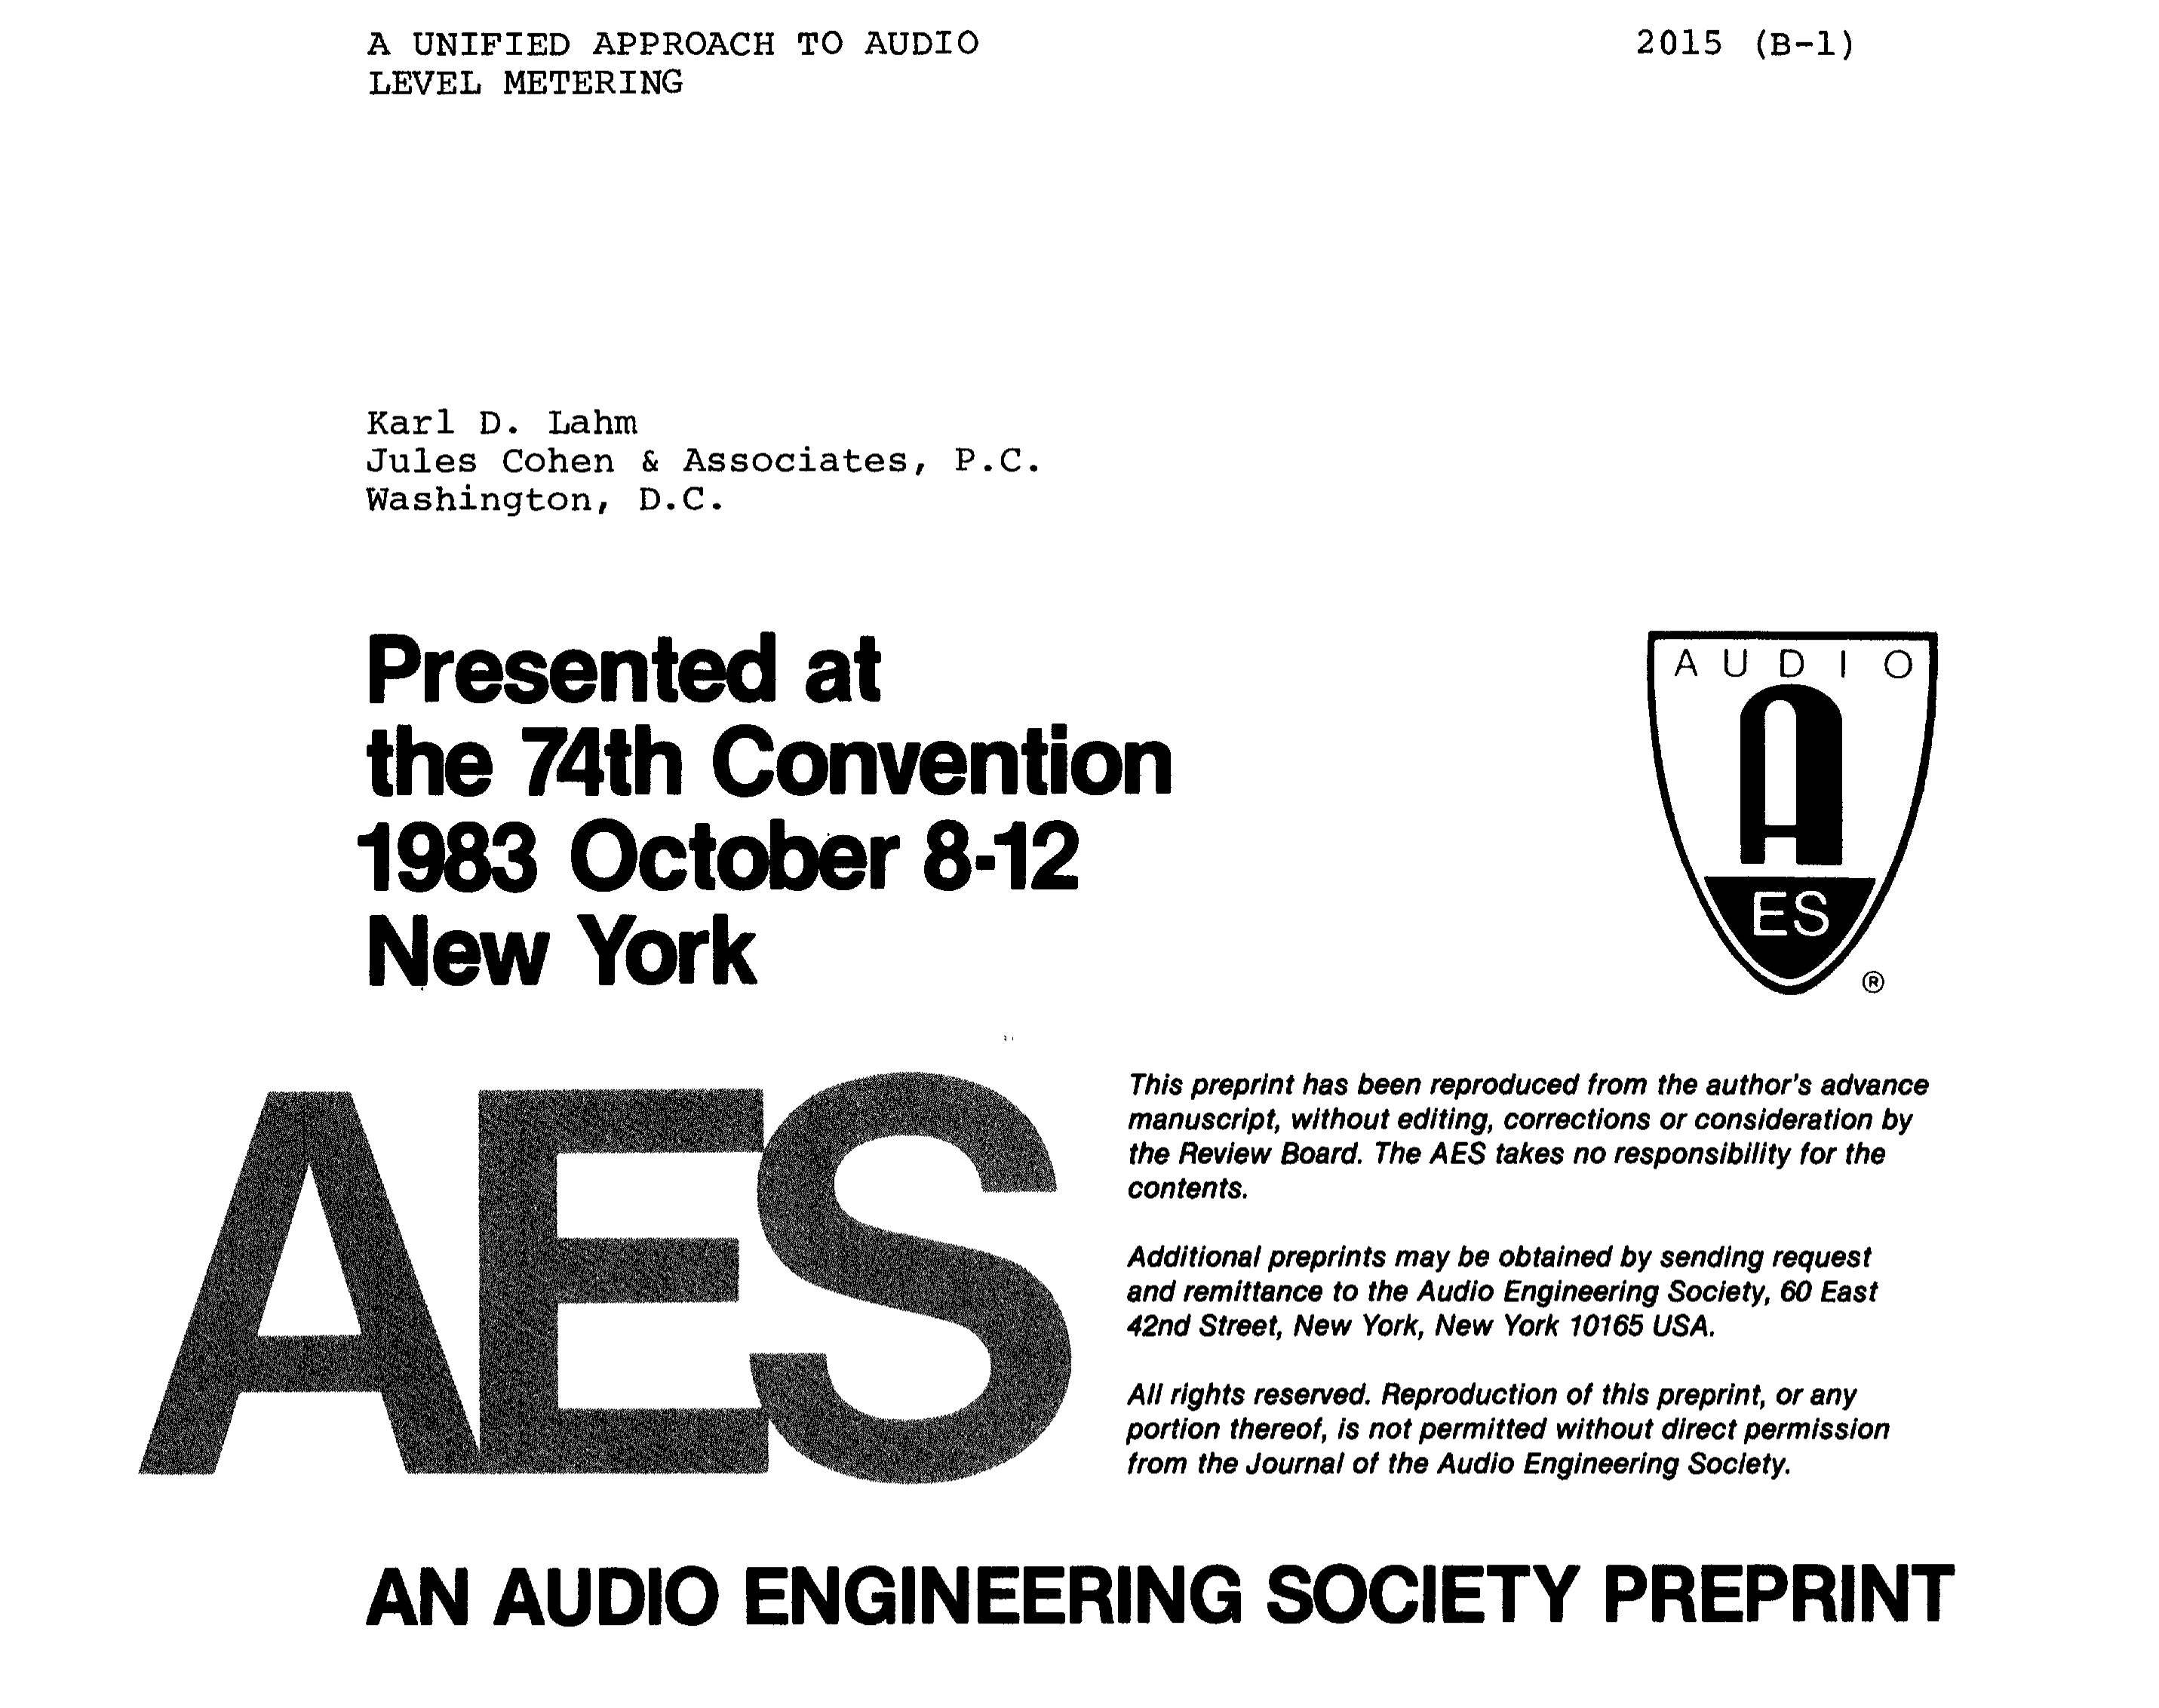 Aes E Library A Unified Approach To Audio Level Metering Simple Vu Meter Analog Circuit